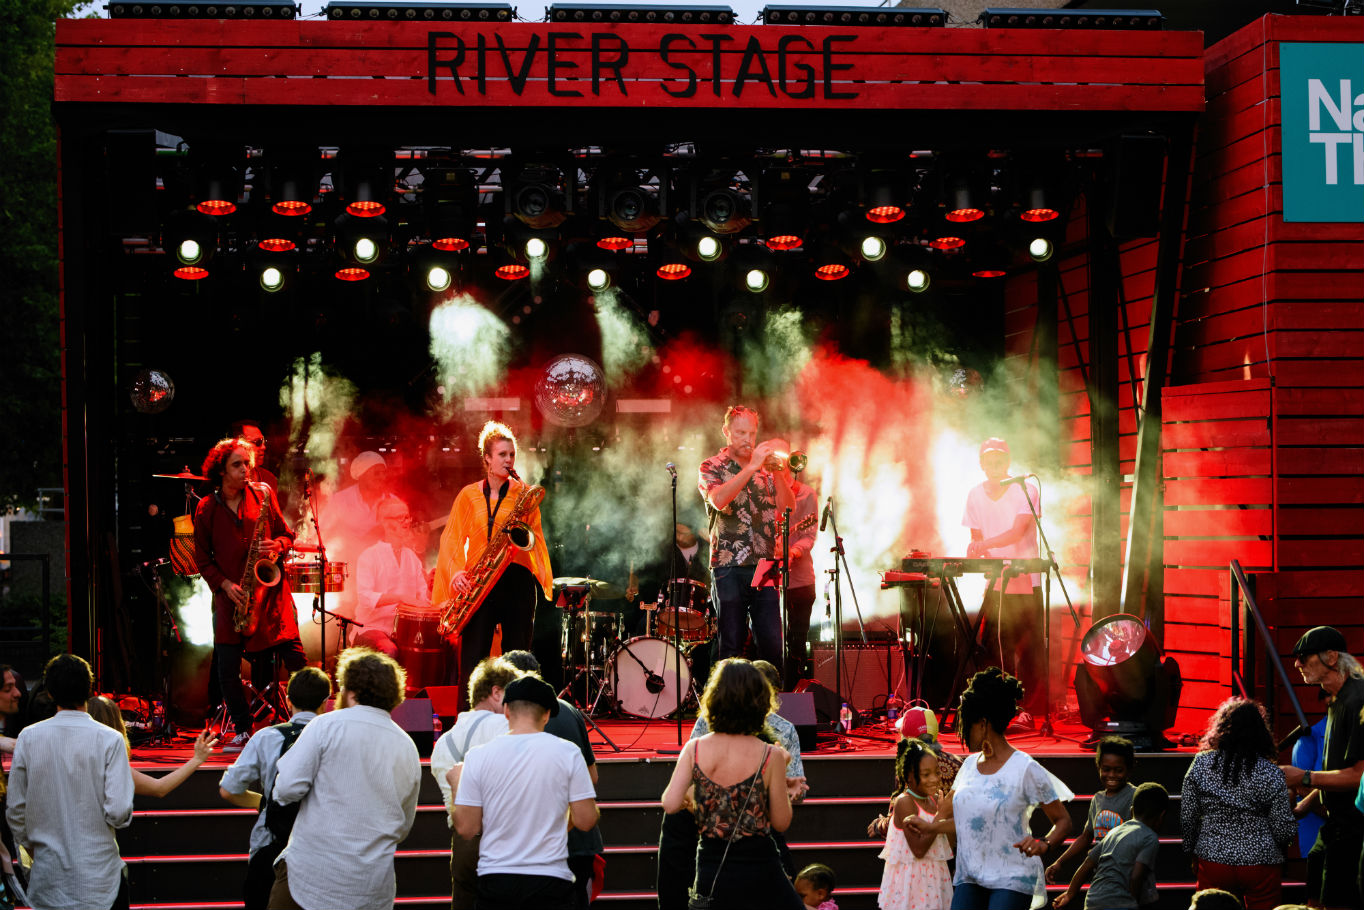 Band performing on River Stage